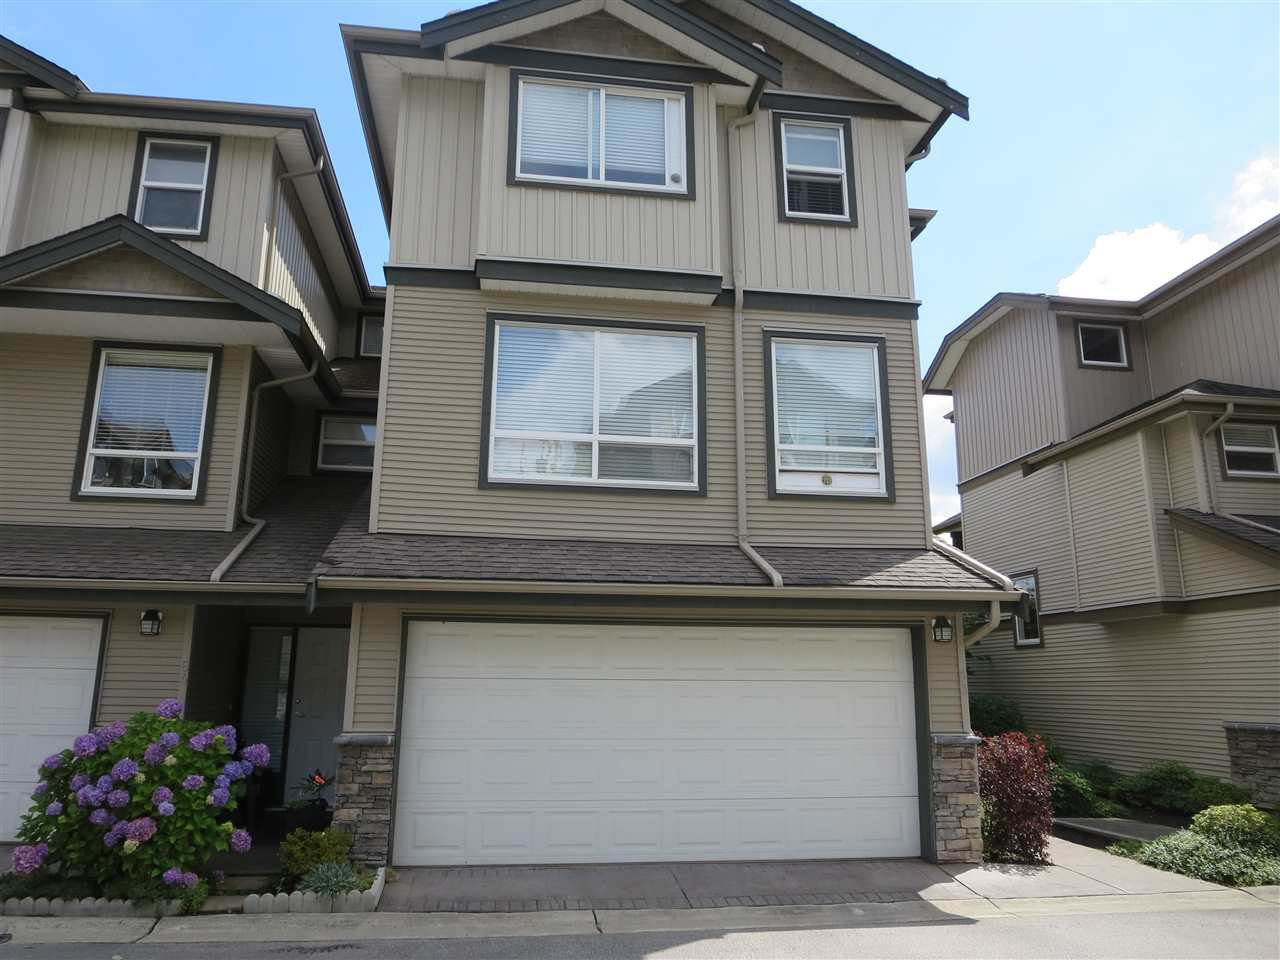 Photo 17: Photos: 63 3127 SKEENA Street in Port Coquitlam: Riverwood Townhouse for sale : MLS®# R2090693